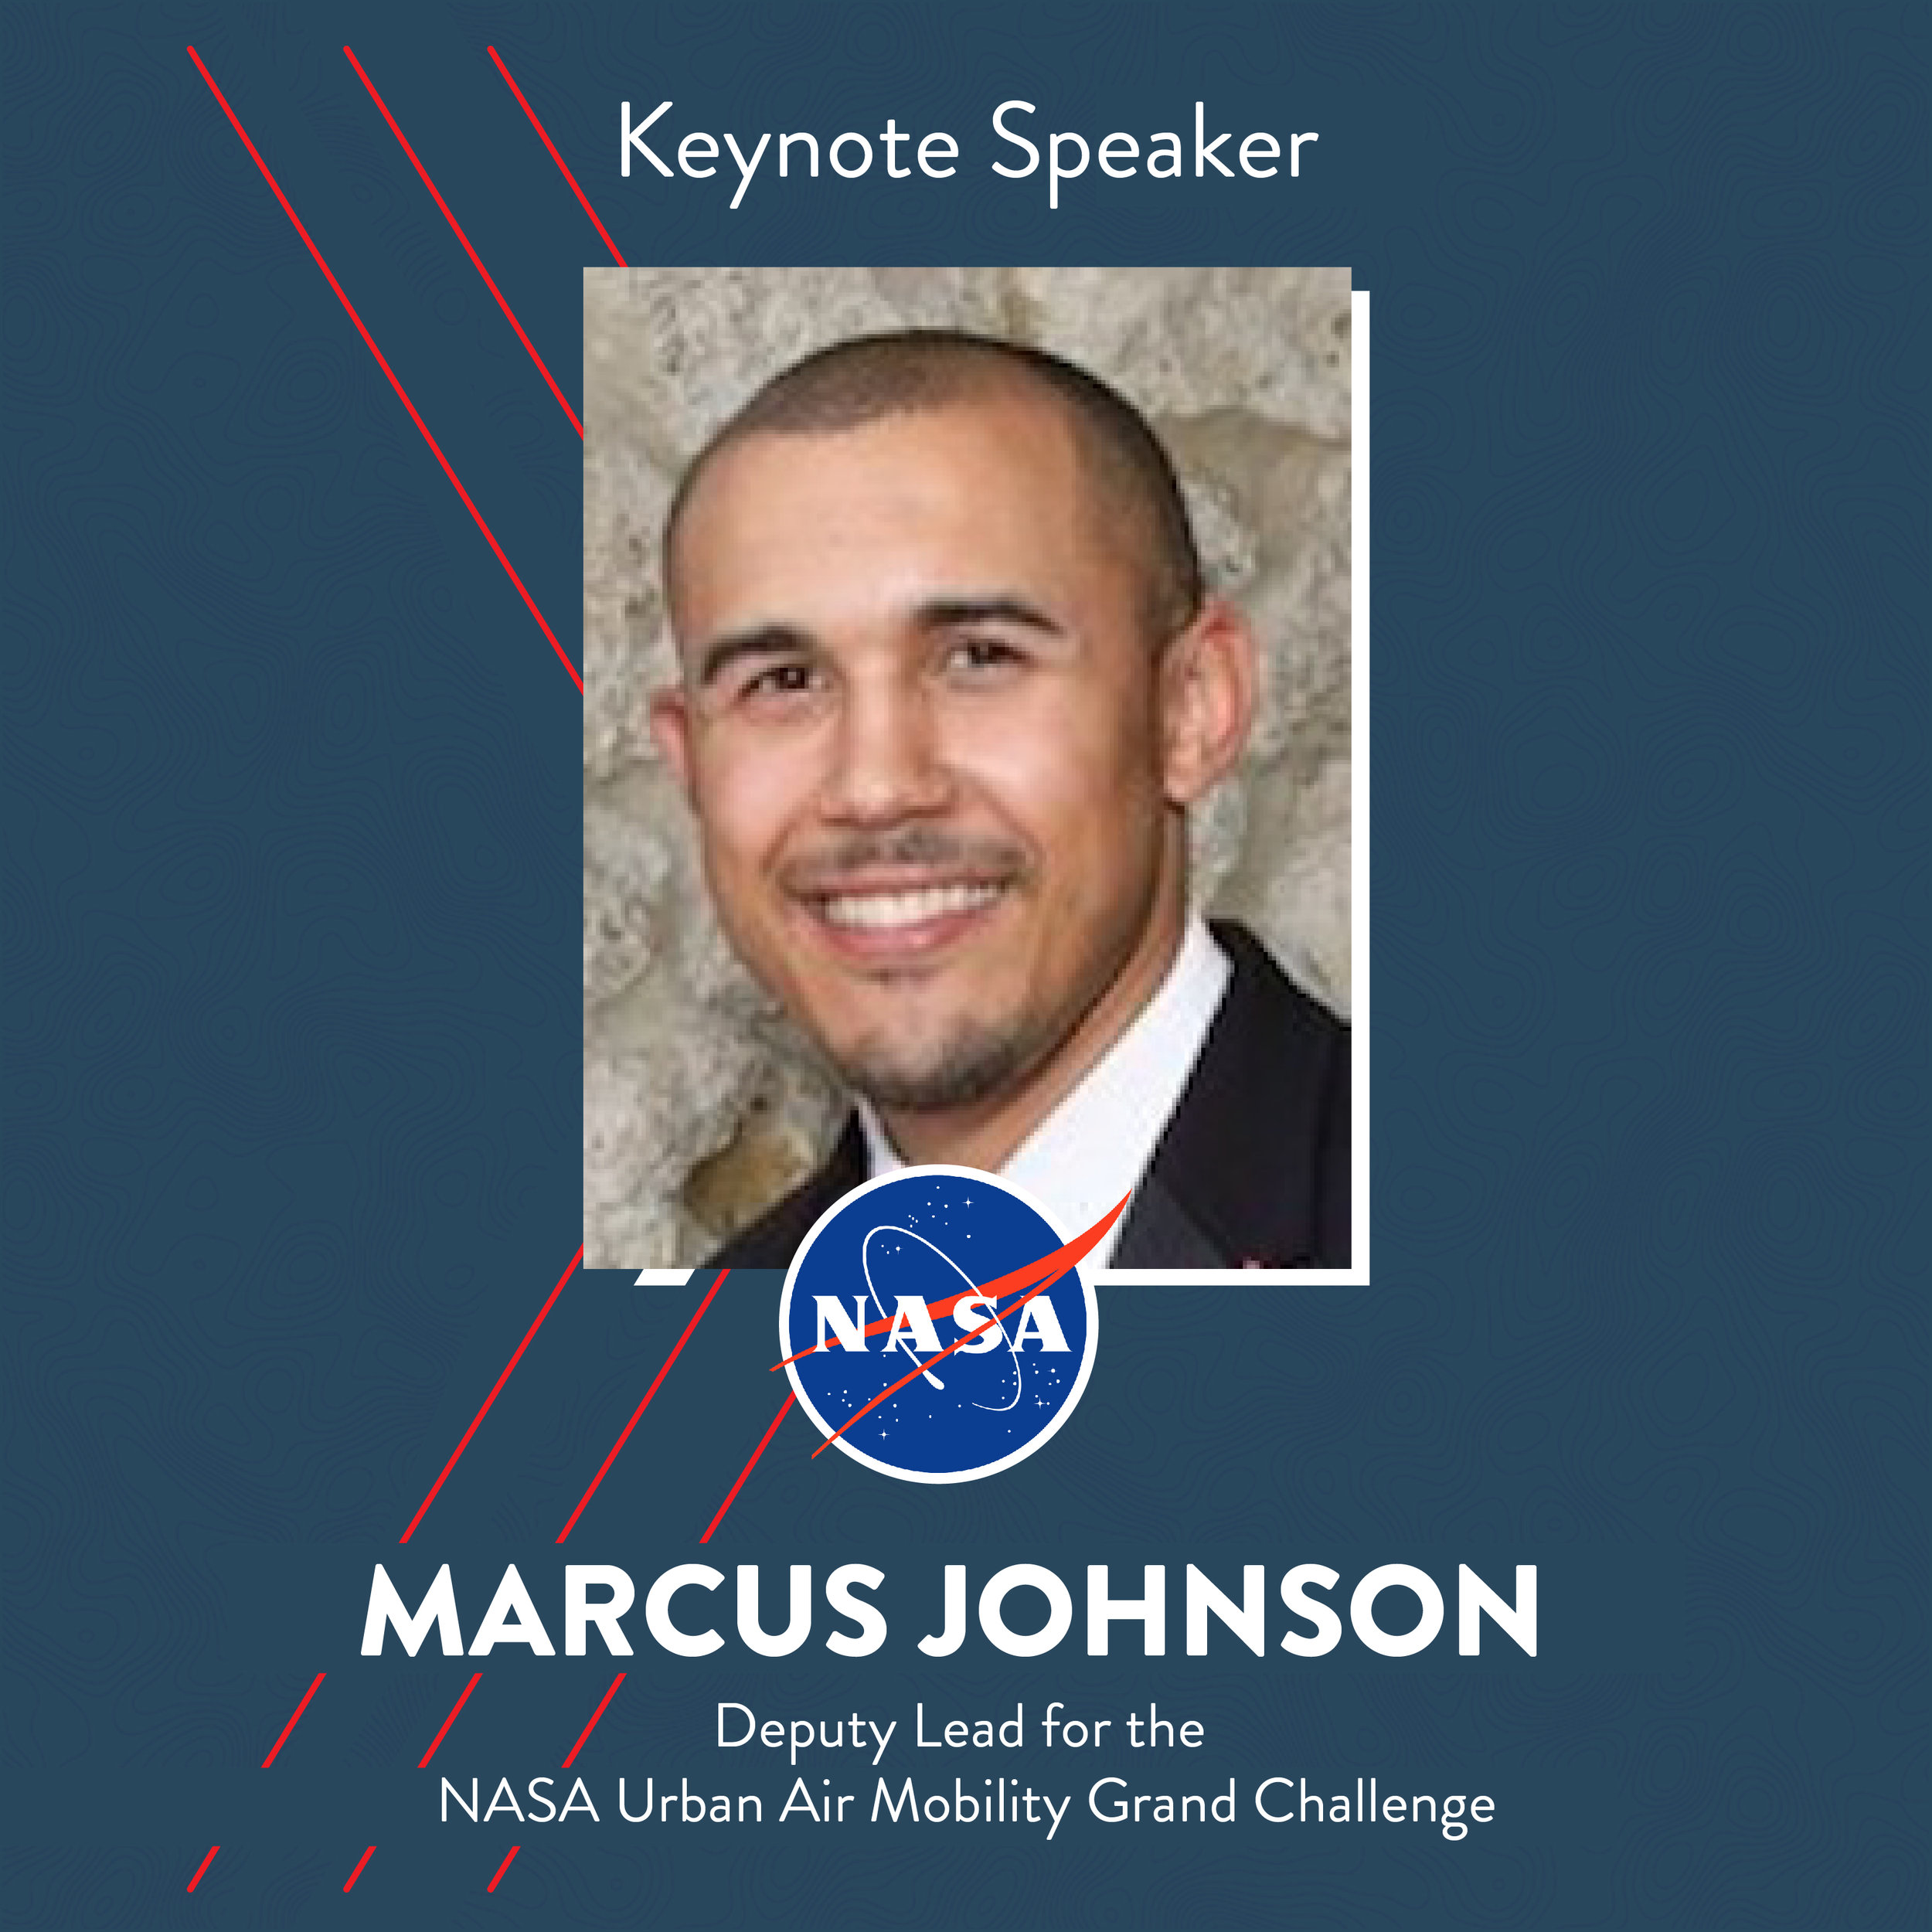 - Dr. Marcus Johnson is a Deputy Lead for the NASA Urban Air Mobility Grand Challenge and has also served as a Deputy Project Manager for the Unmanned Aircraft System (UAS) Traffic Management (UTM) Project at the NASA Ames Research Center. He holds a doctorate in Aerospace Engineering from the University of Florida and his research interests focus on intelligent systems in aerospace applications and the integration of novel and new aircraft into the national airspace.